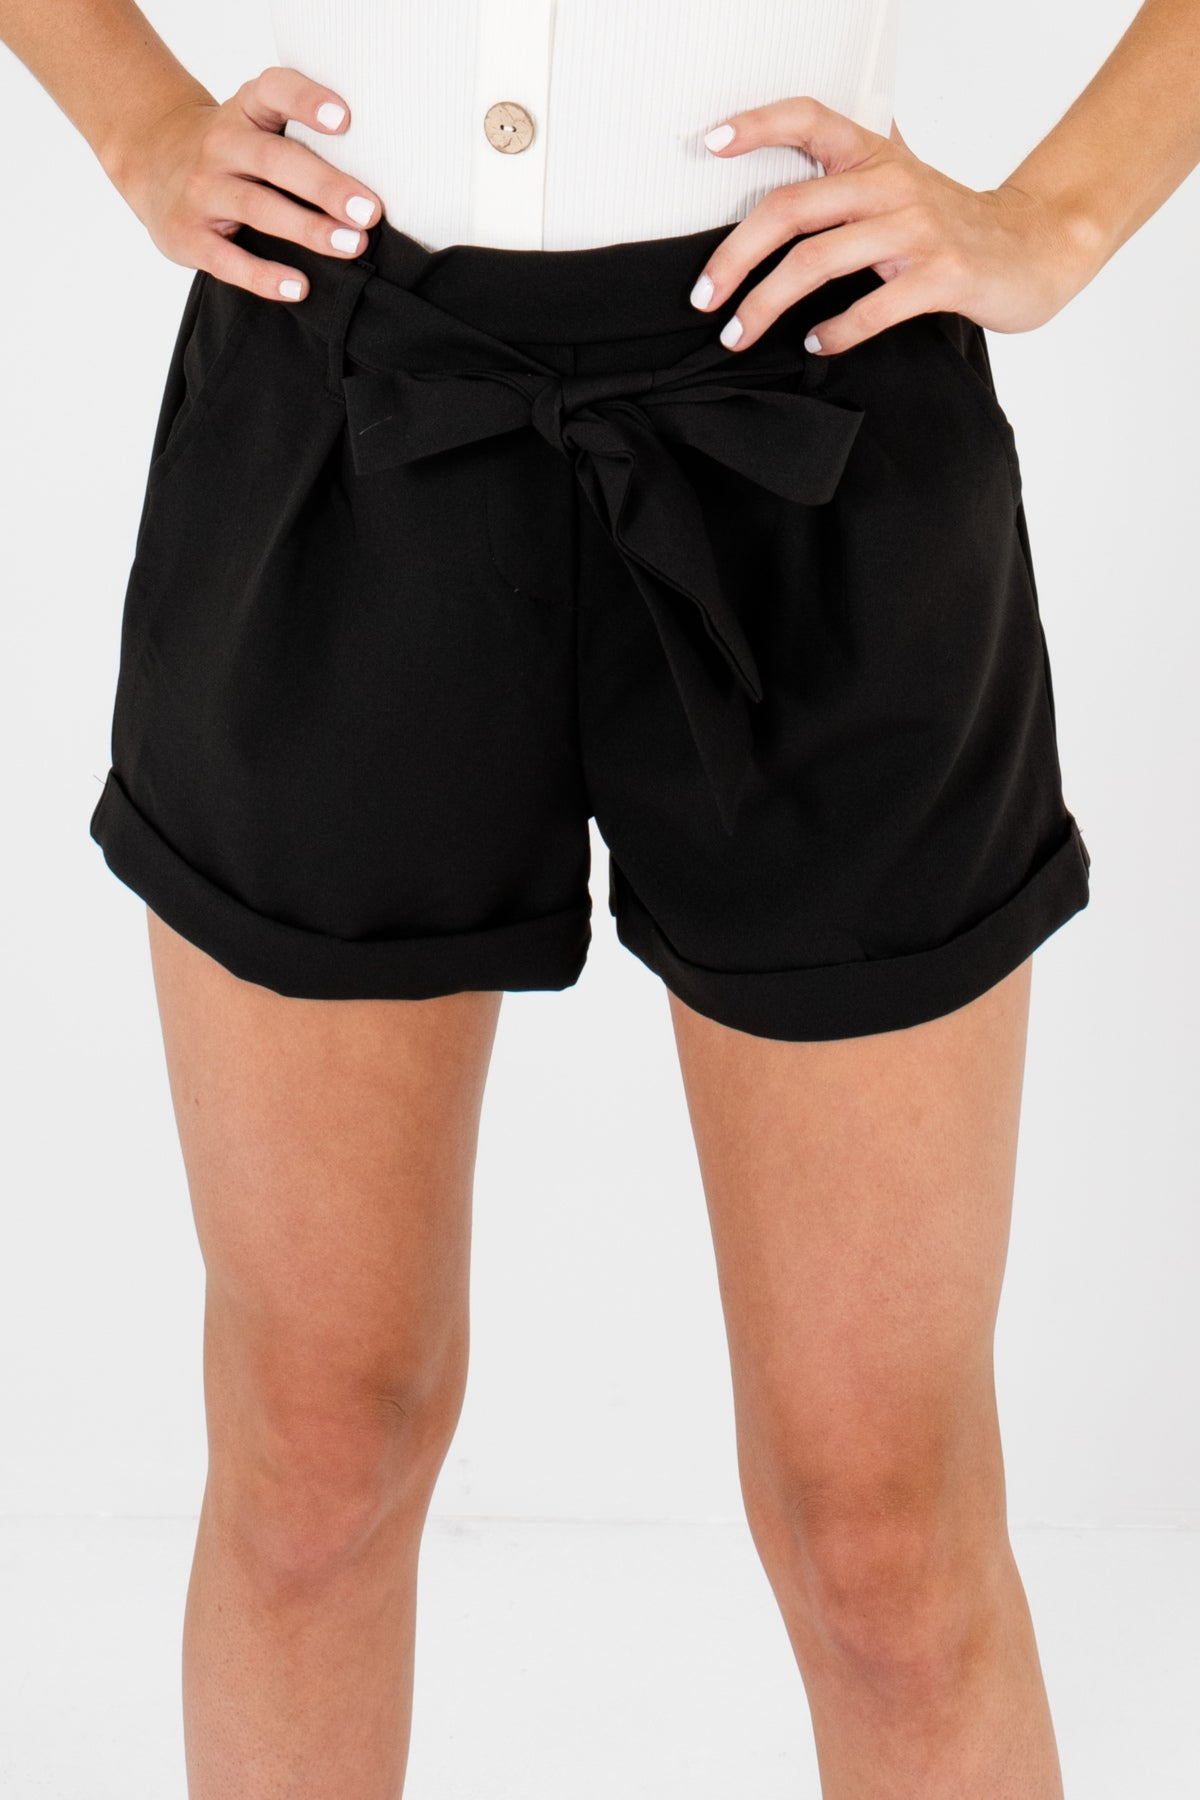 Black Pleated Business Casual Shorts with Pockets and Tie-Front Detail